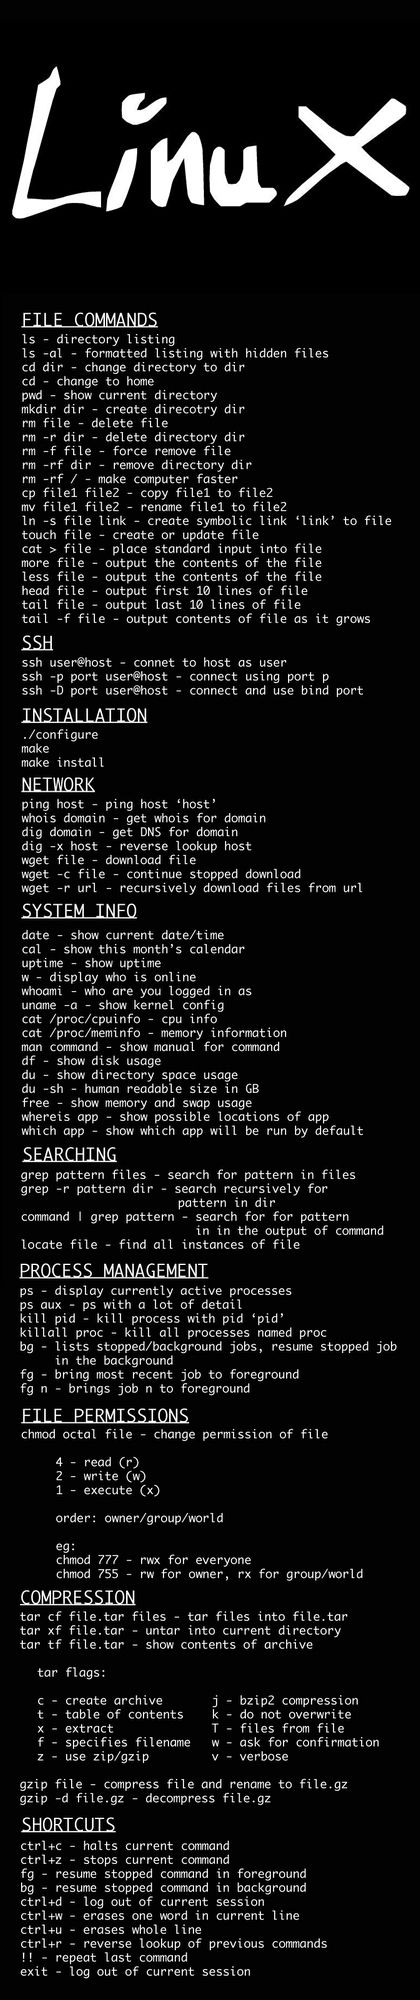 Computer Science, Programming Languages, Linux | Basic Linux commands cheat sheet, the poster I've always dreamed! Shortcut for terminal: Ctrl+Alt+T #technology #linux